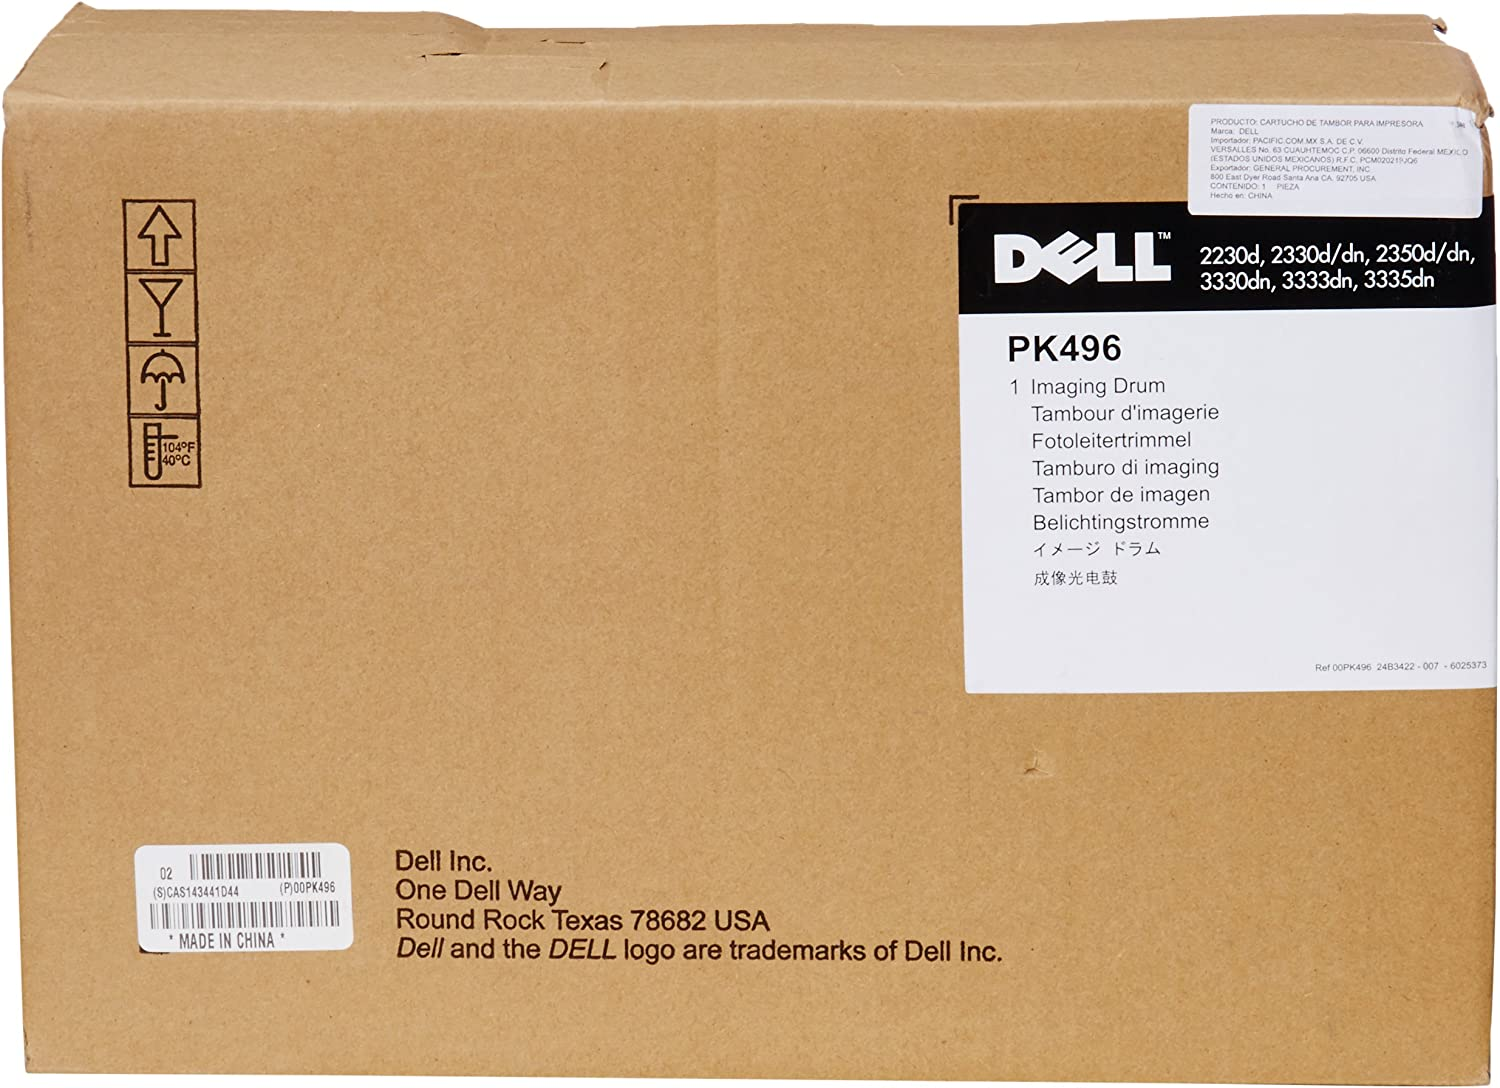 Dell PK496 Black Imaging Drum Kit 2230d, 2330d/dn, 2350d/dn/3330dn/3333dn/3335dn Laser Printer